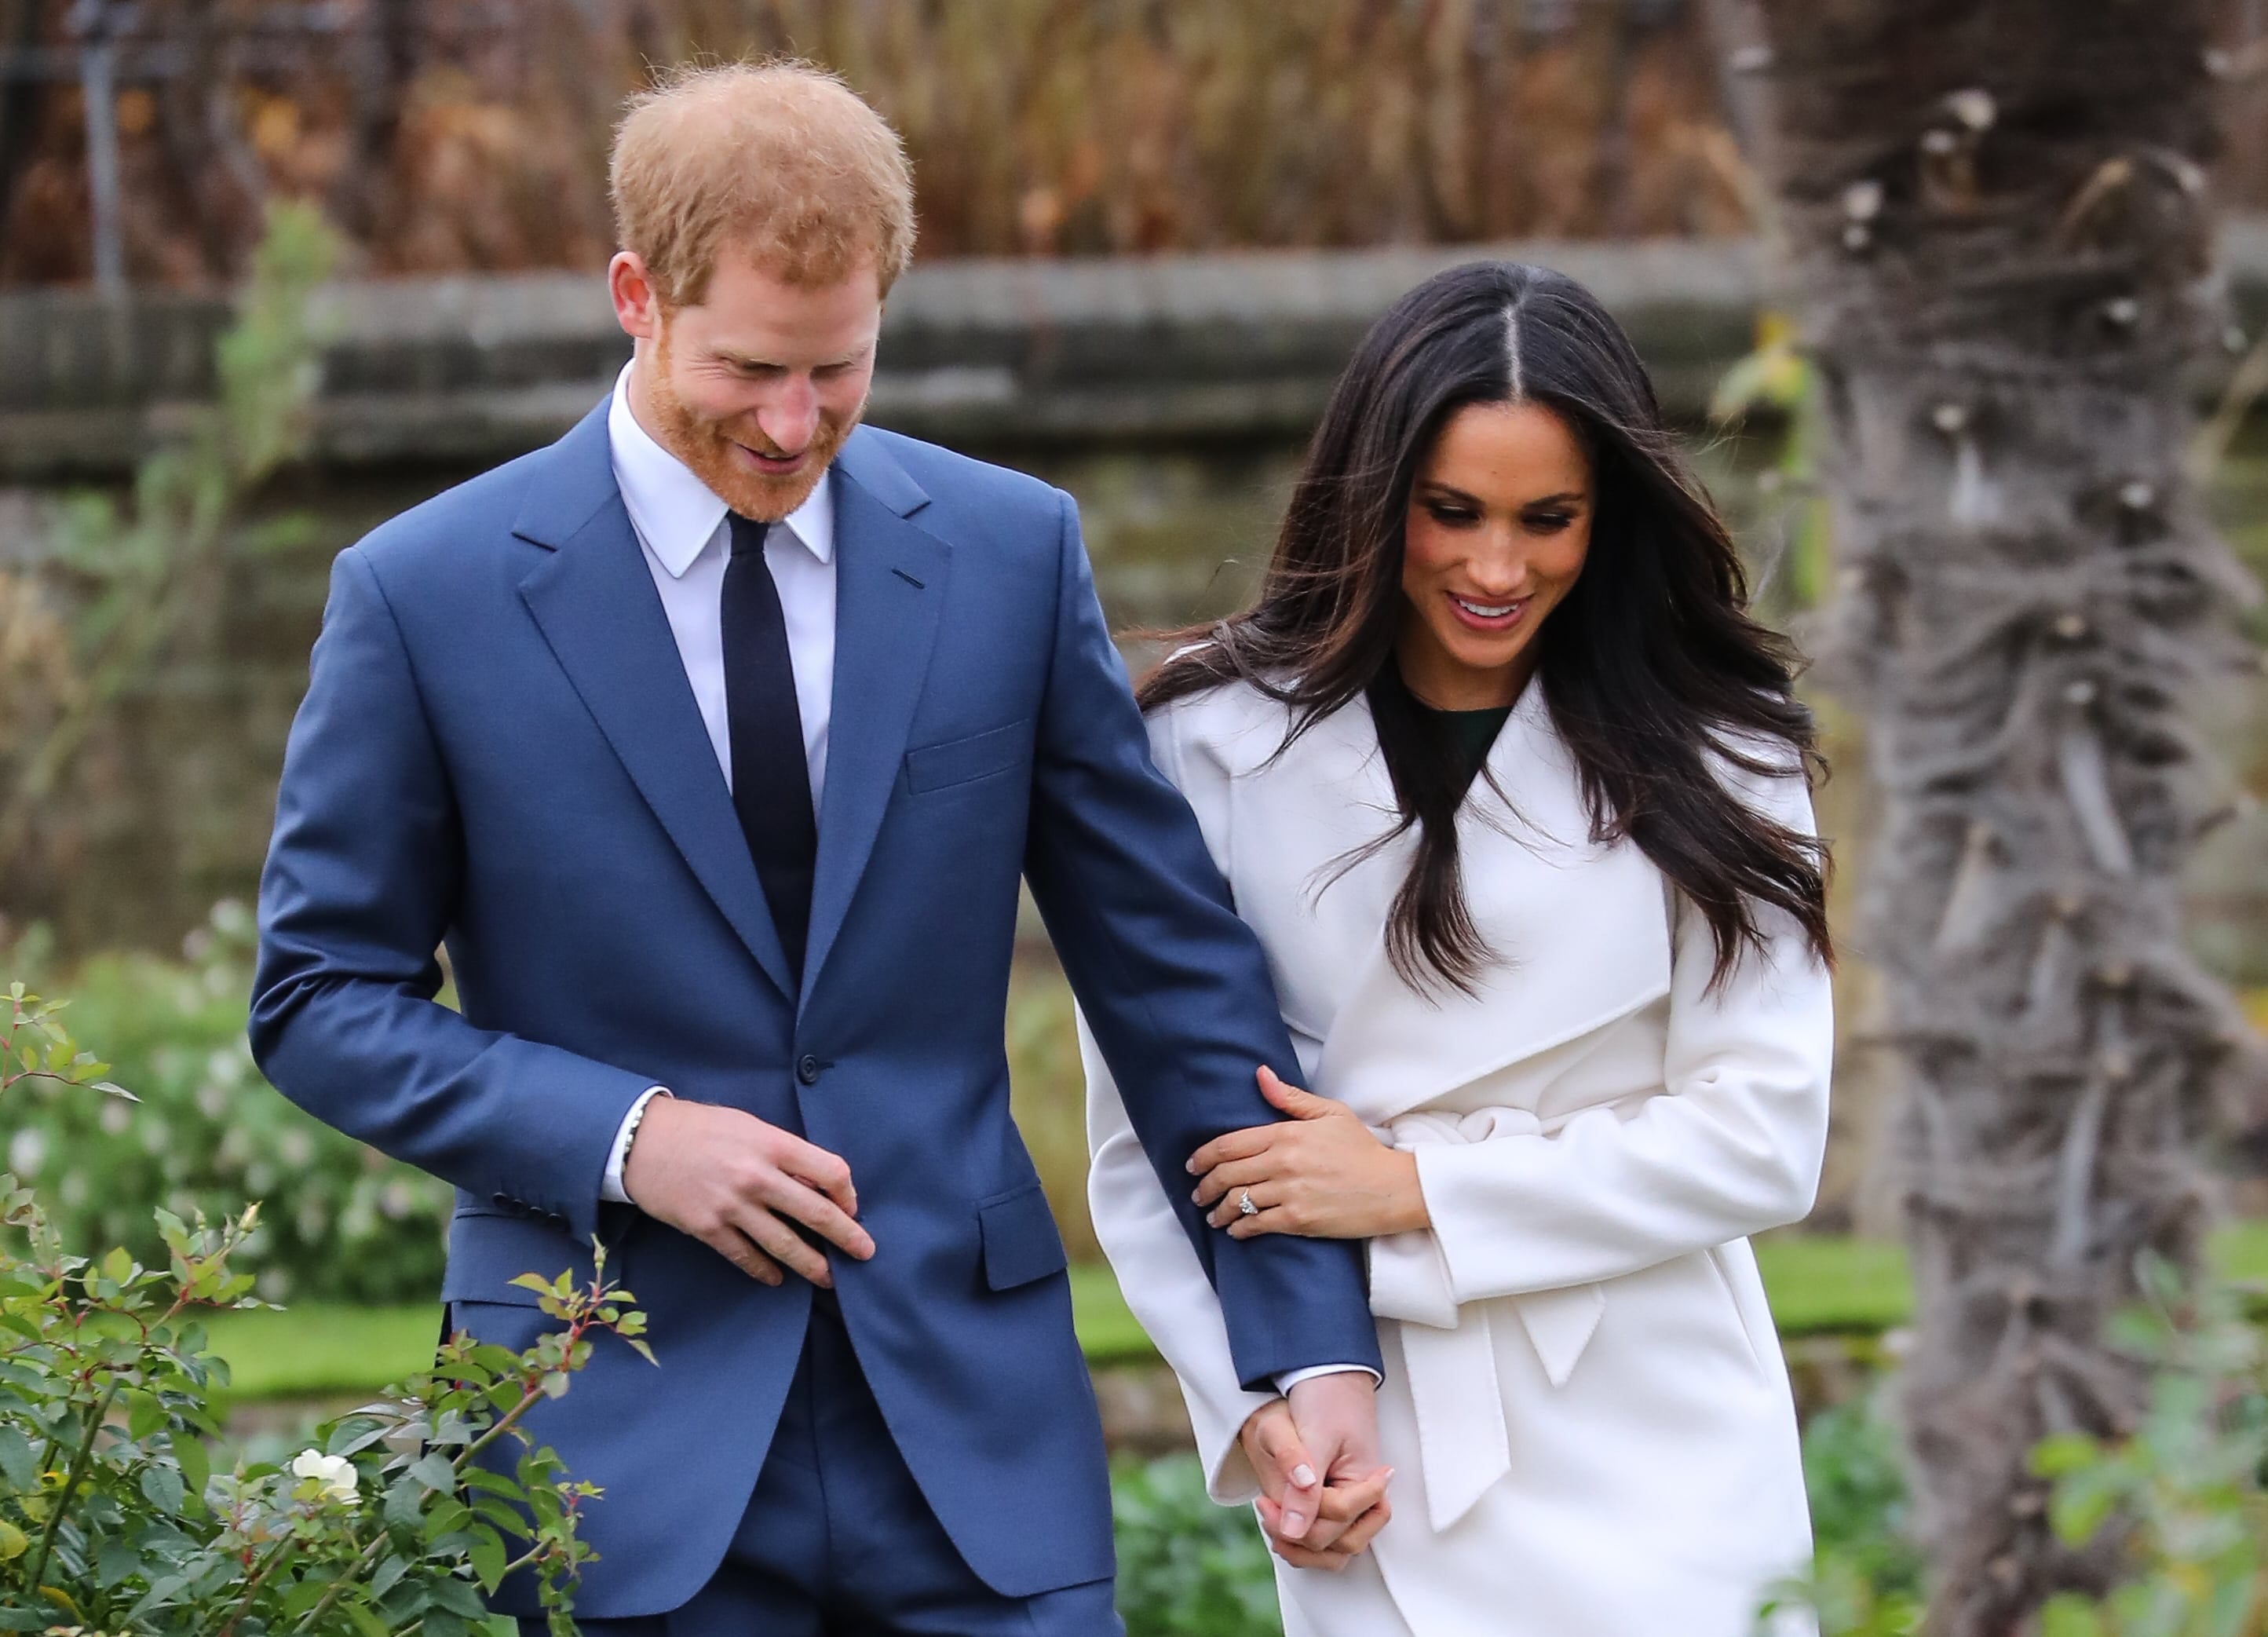 Prince Harry and Meghan Markle are officially engaged. (Photo: WENN)